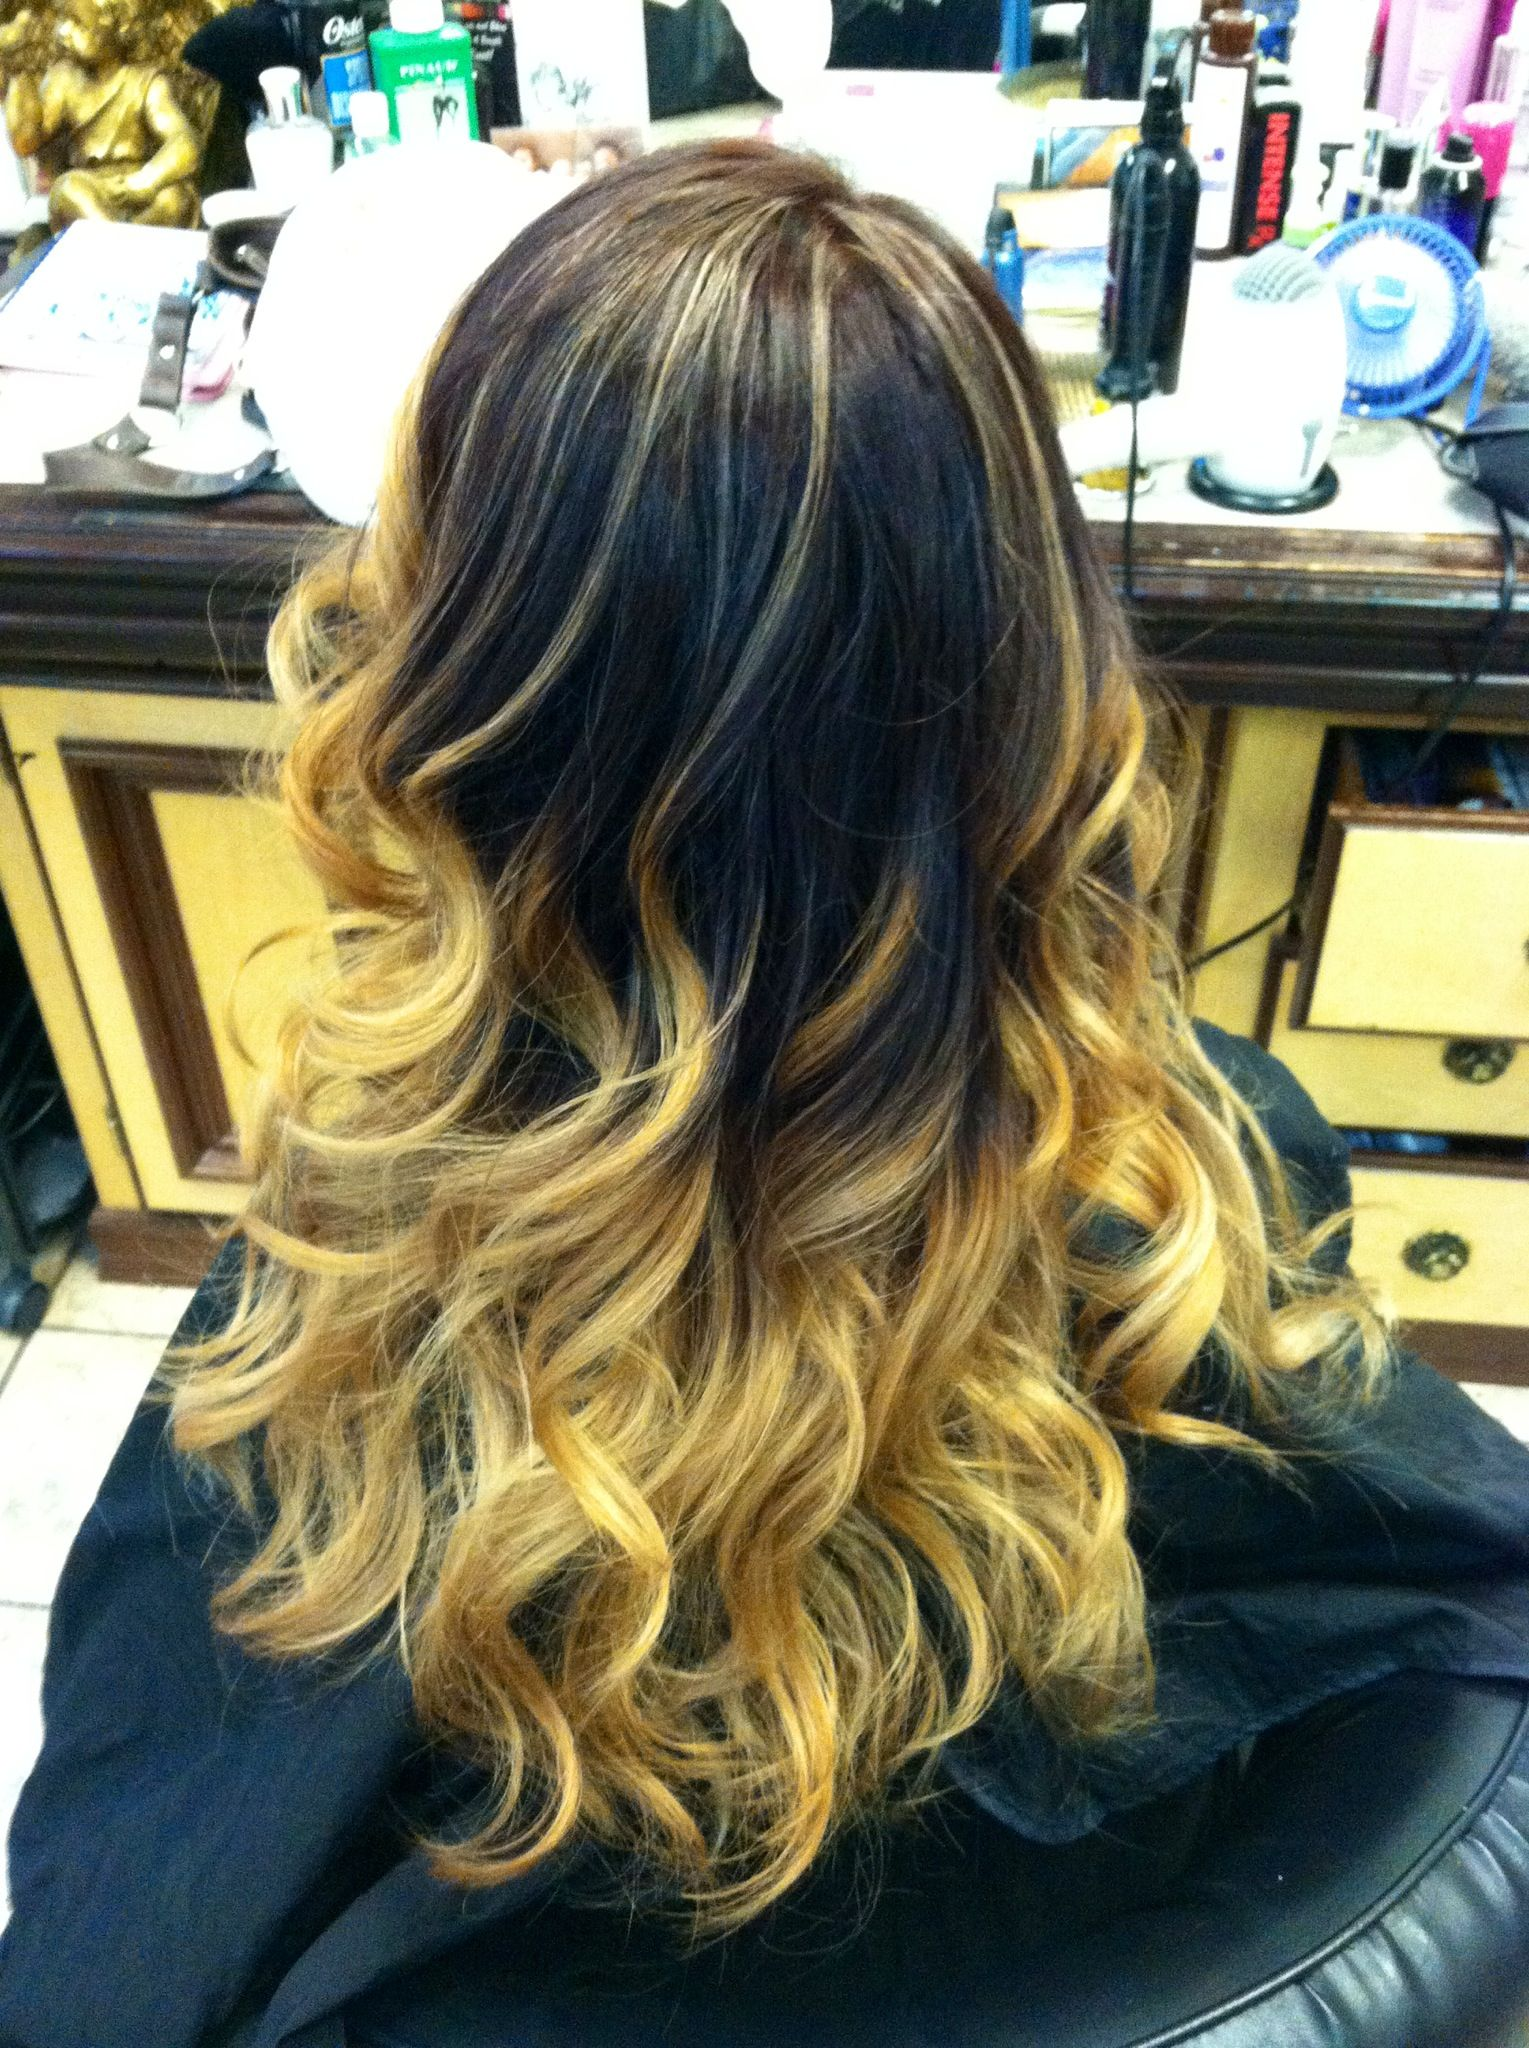 caramel blonde ombre hair images galleries with a bite. Black Bedroom Furniture Sets. Home Design Ideas